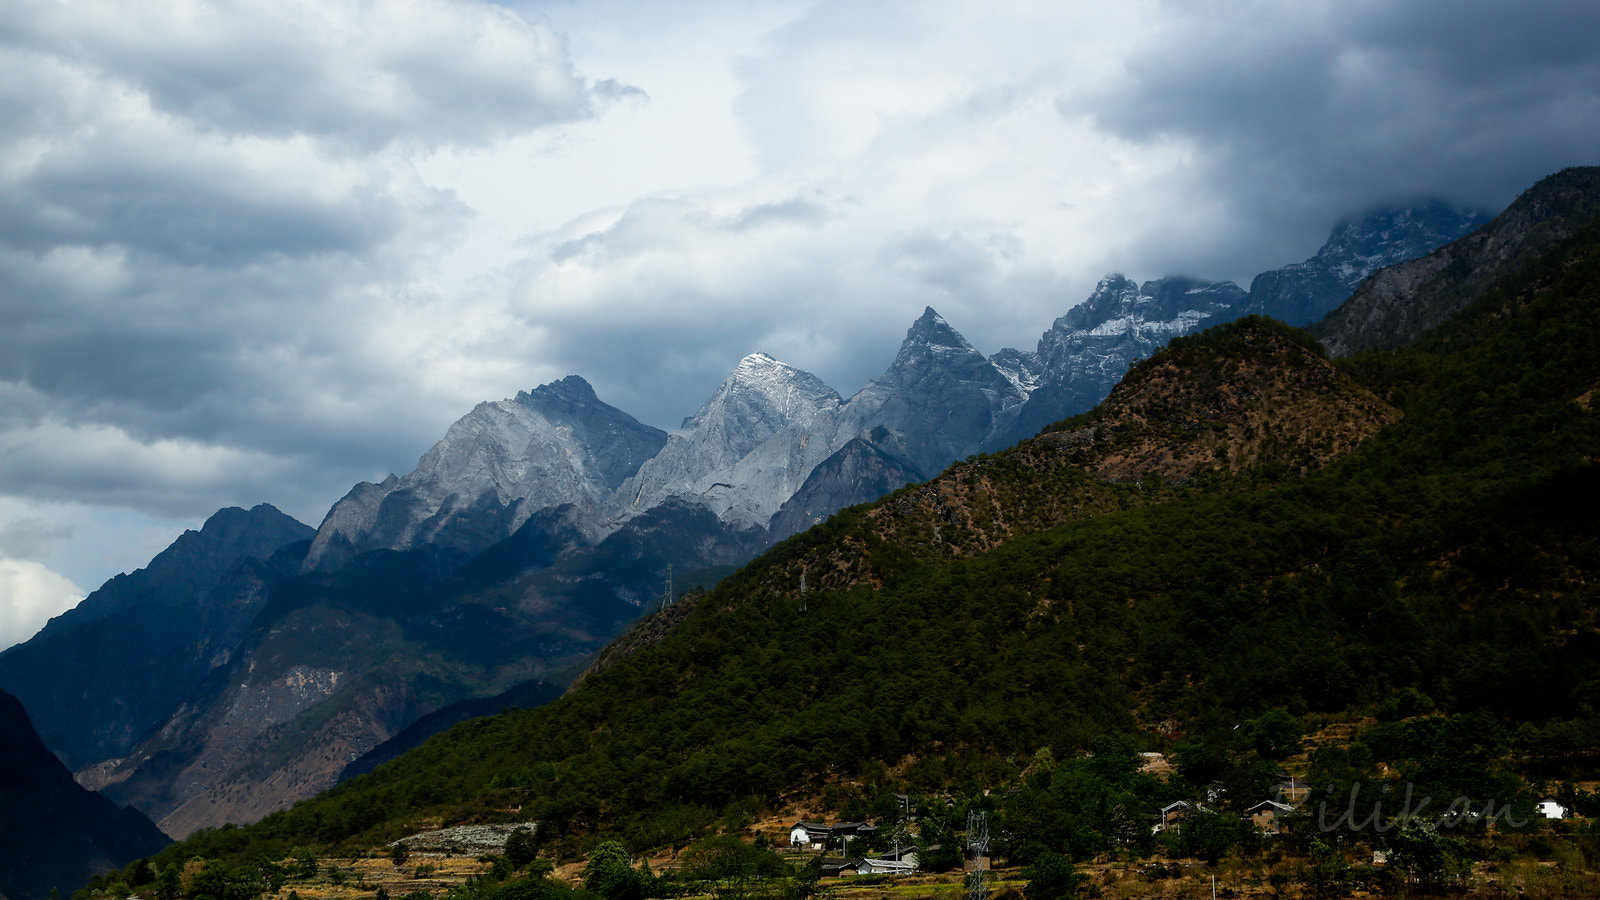 Photograph Jade dragon Mountain by Pilikan Ch on 500px